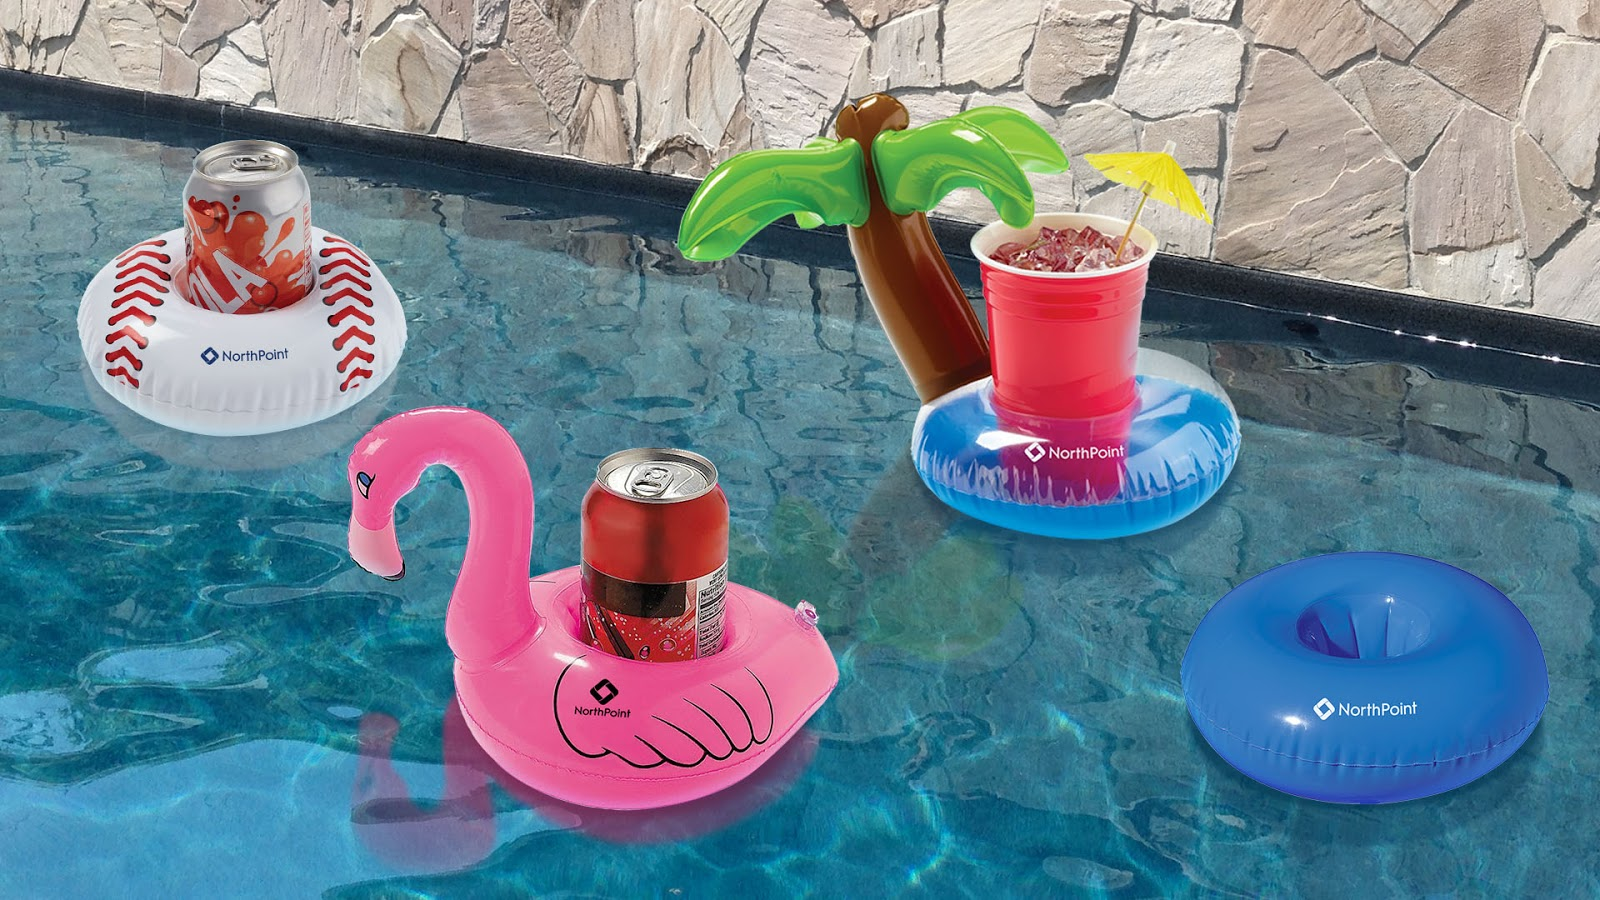 NorthPoint Inflatable Beverage Coasters